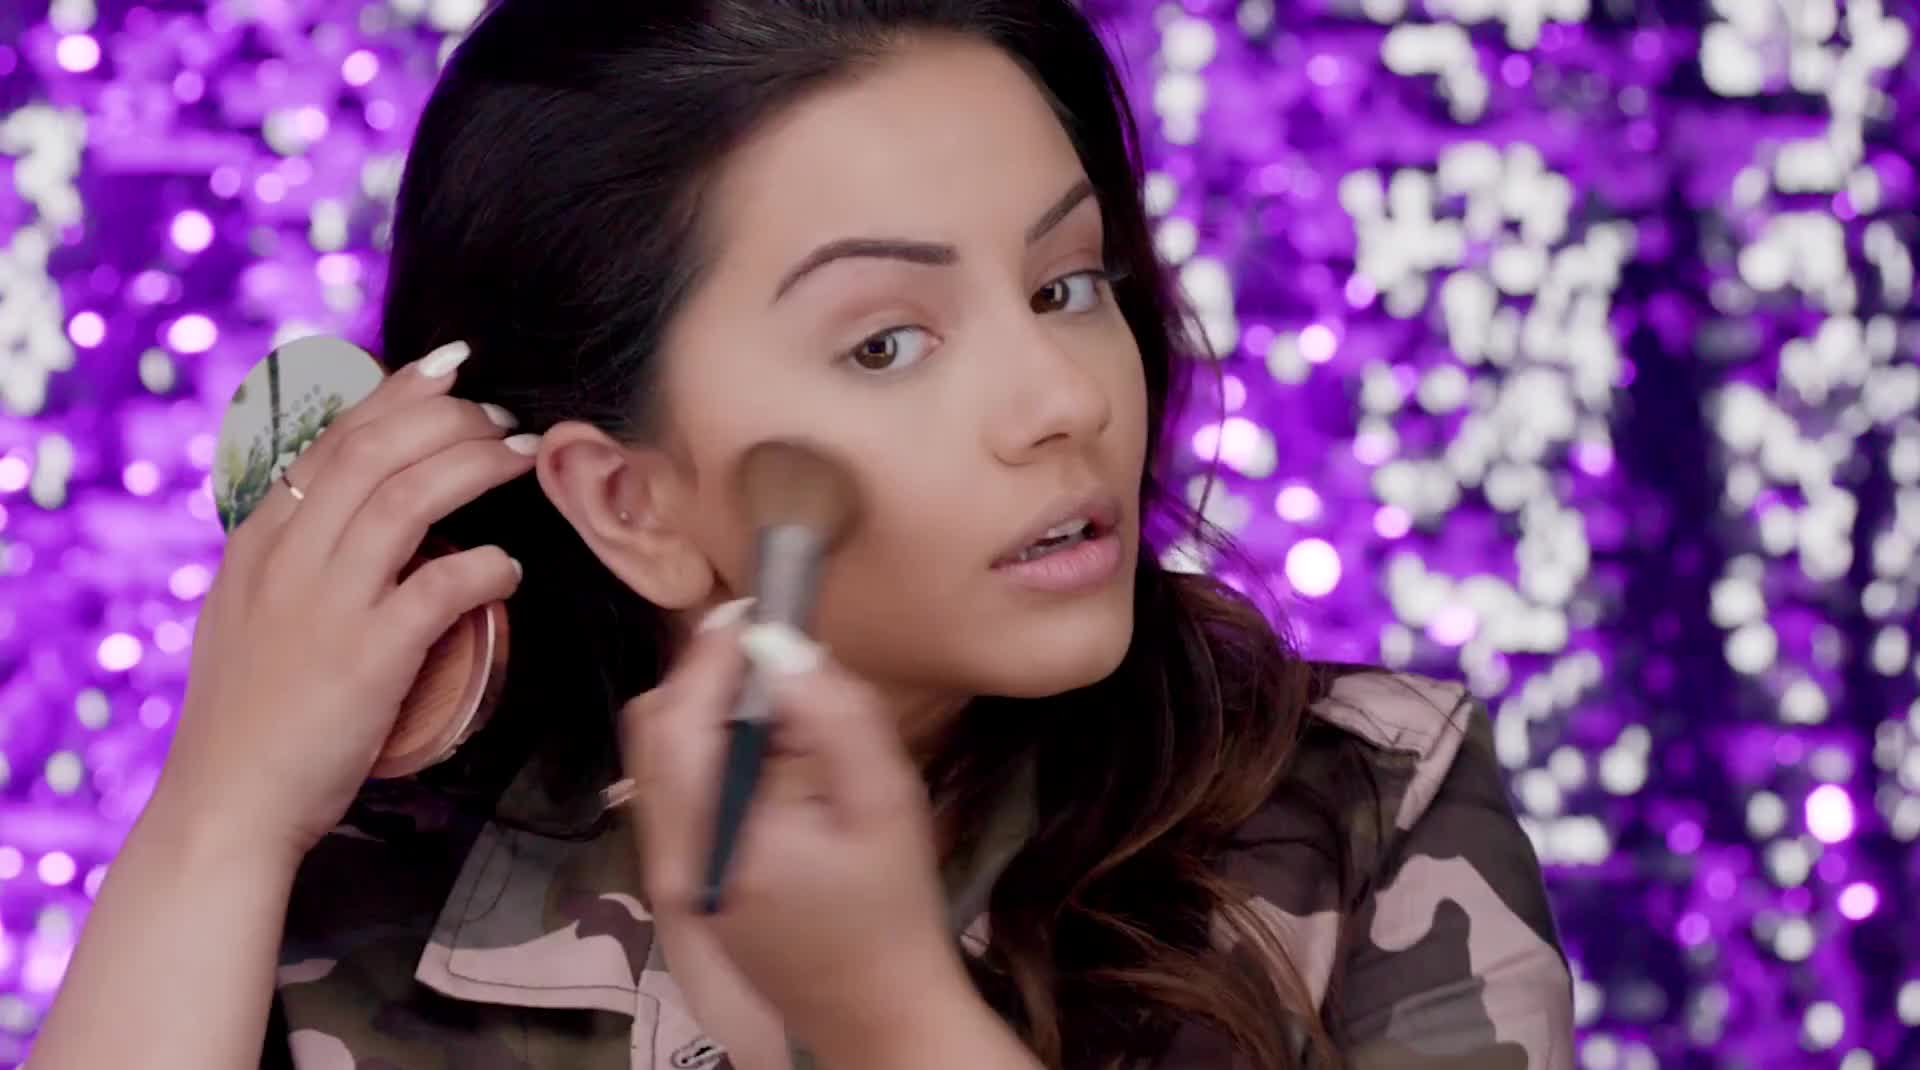 Kaushal Beauty All Nighter Tutorial | Natural, Glowy Skin Look | Urban Decay